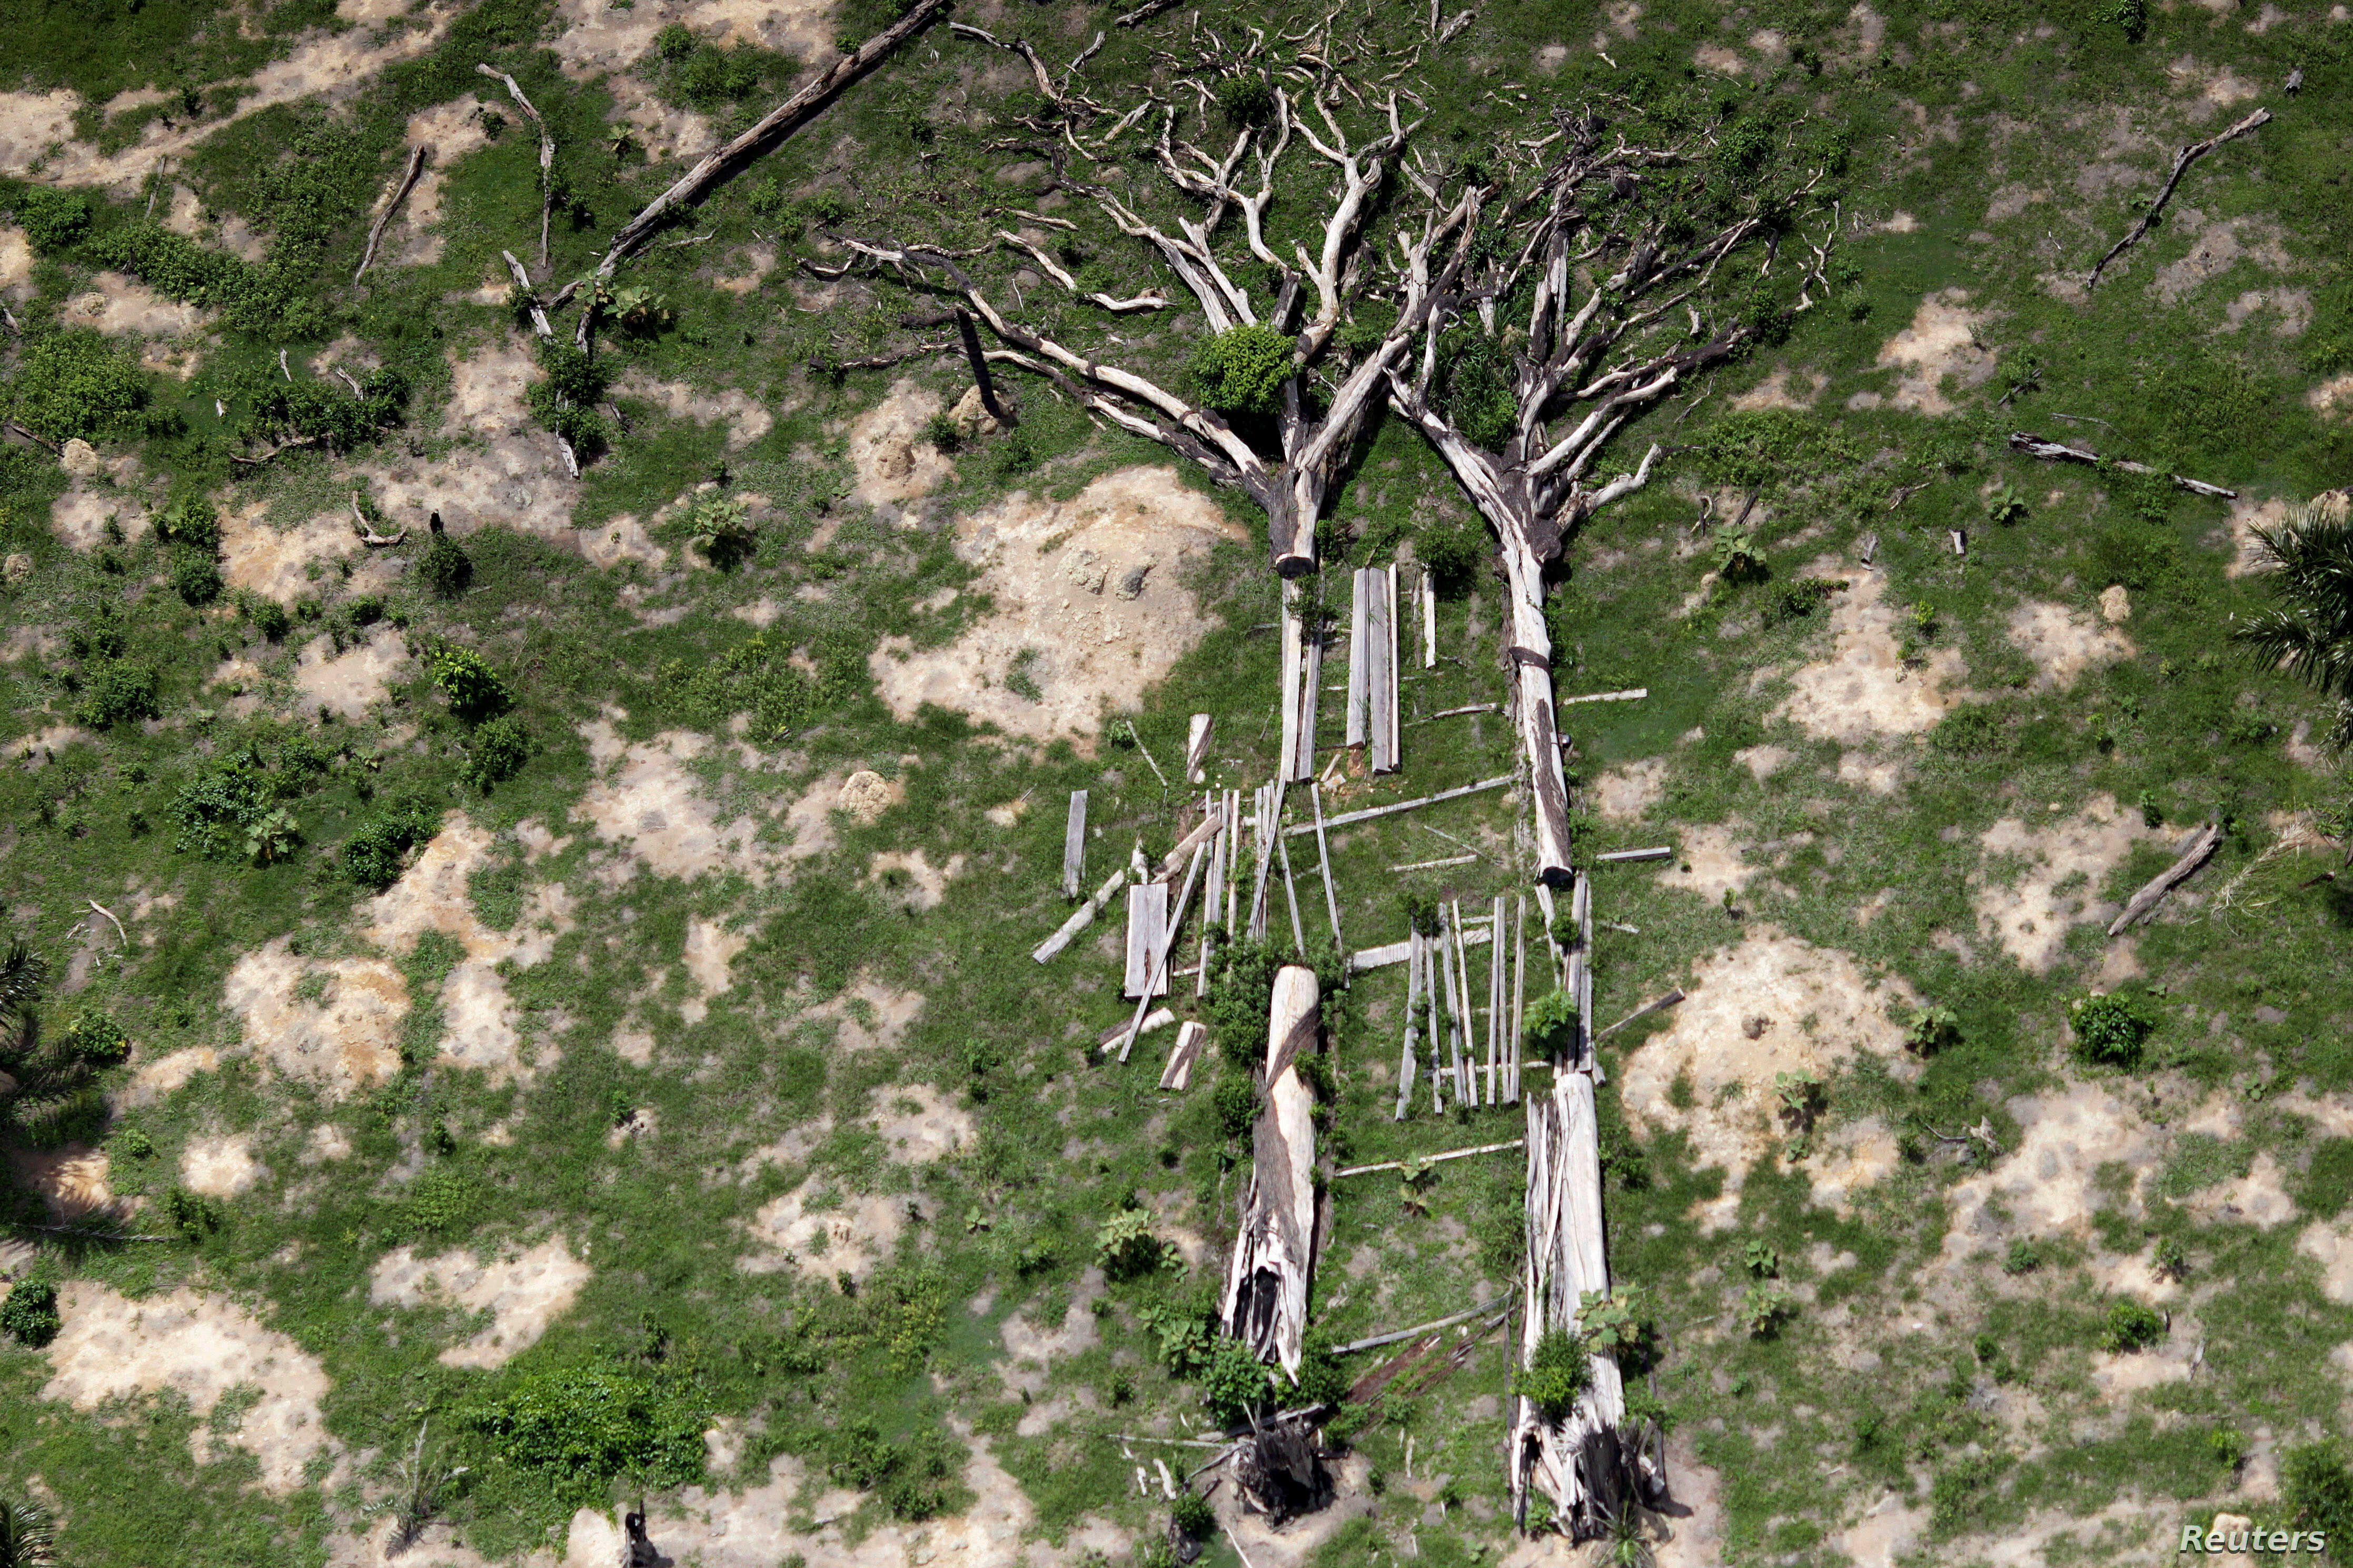 Fallen trees are seen during an operation to combat illegal mining and logging conducted by agents of the Brazilian Institute for the Environment and Renewable Natural Resources, supported by military police, in the municipality of Novo Progresso, Pa...